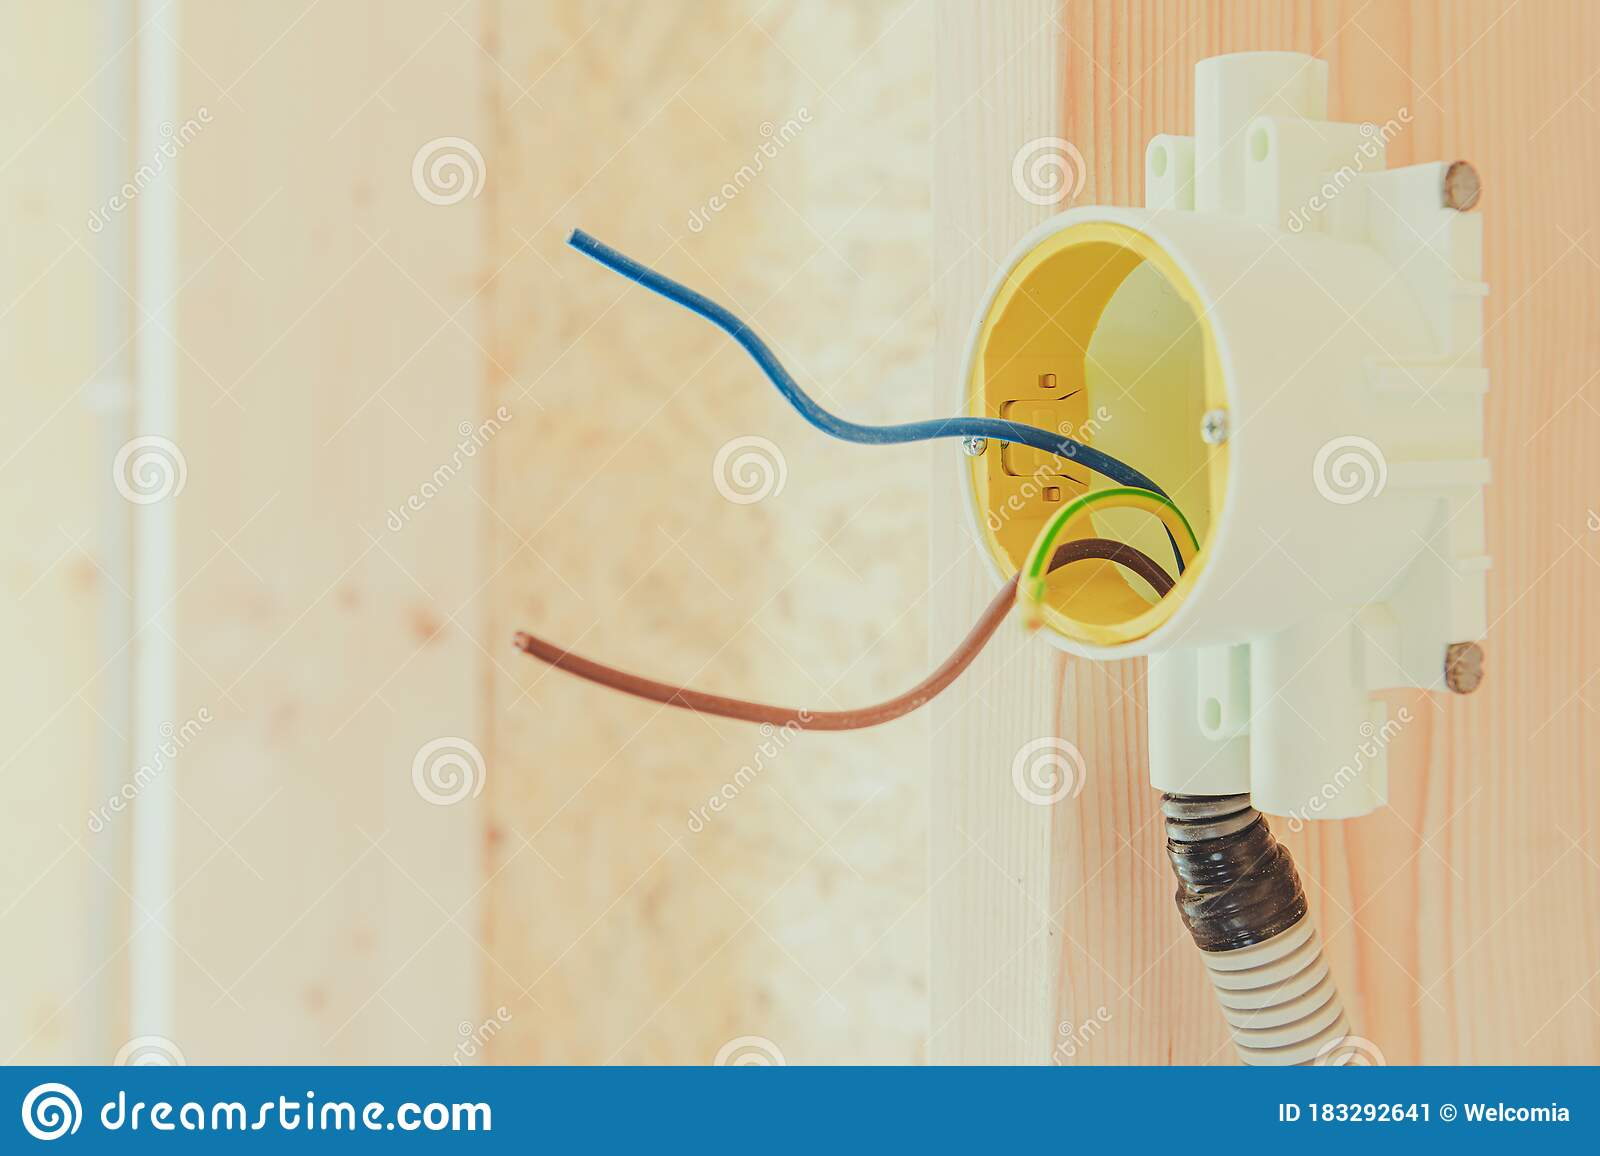 Electrical Box And Wiring In New Construction Stock Image Image Of Wood Construction 183292641